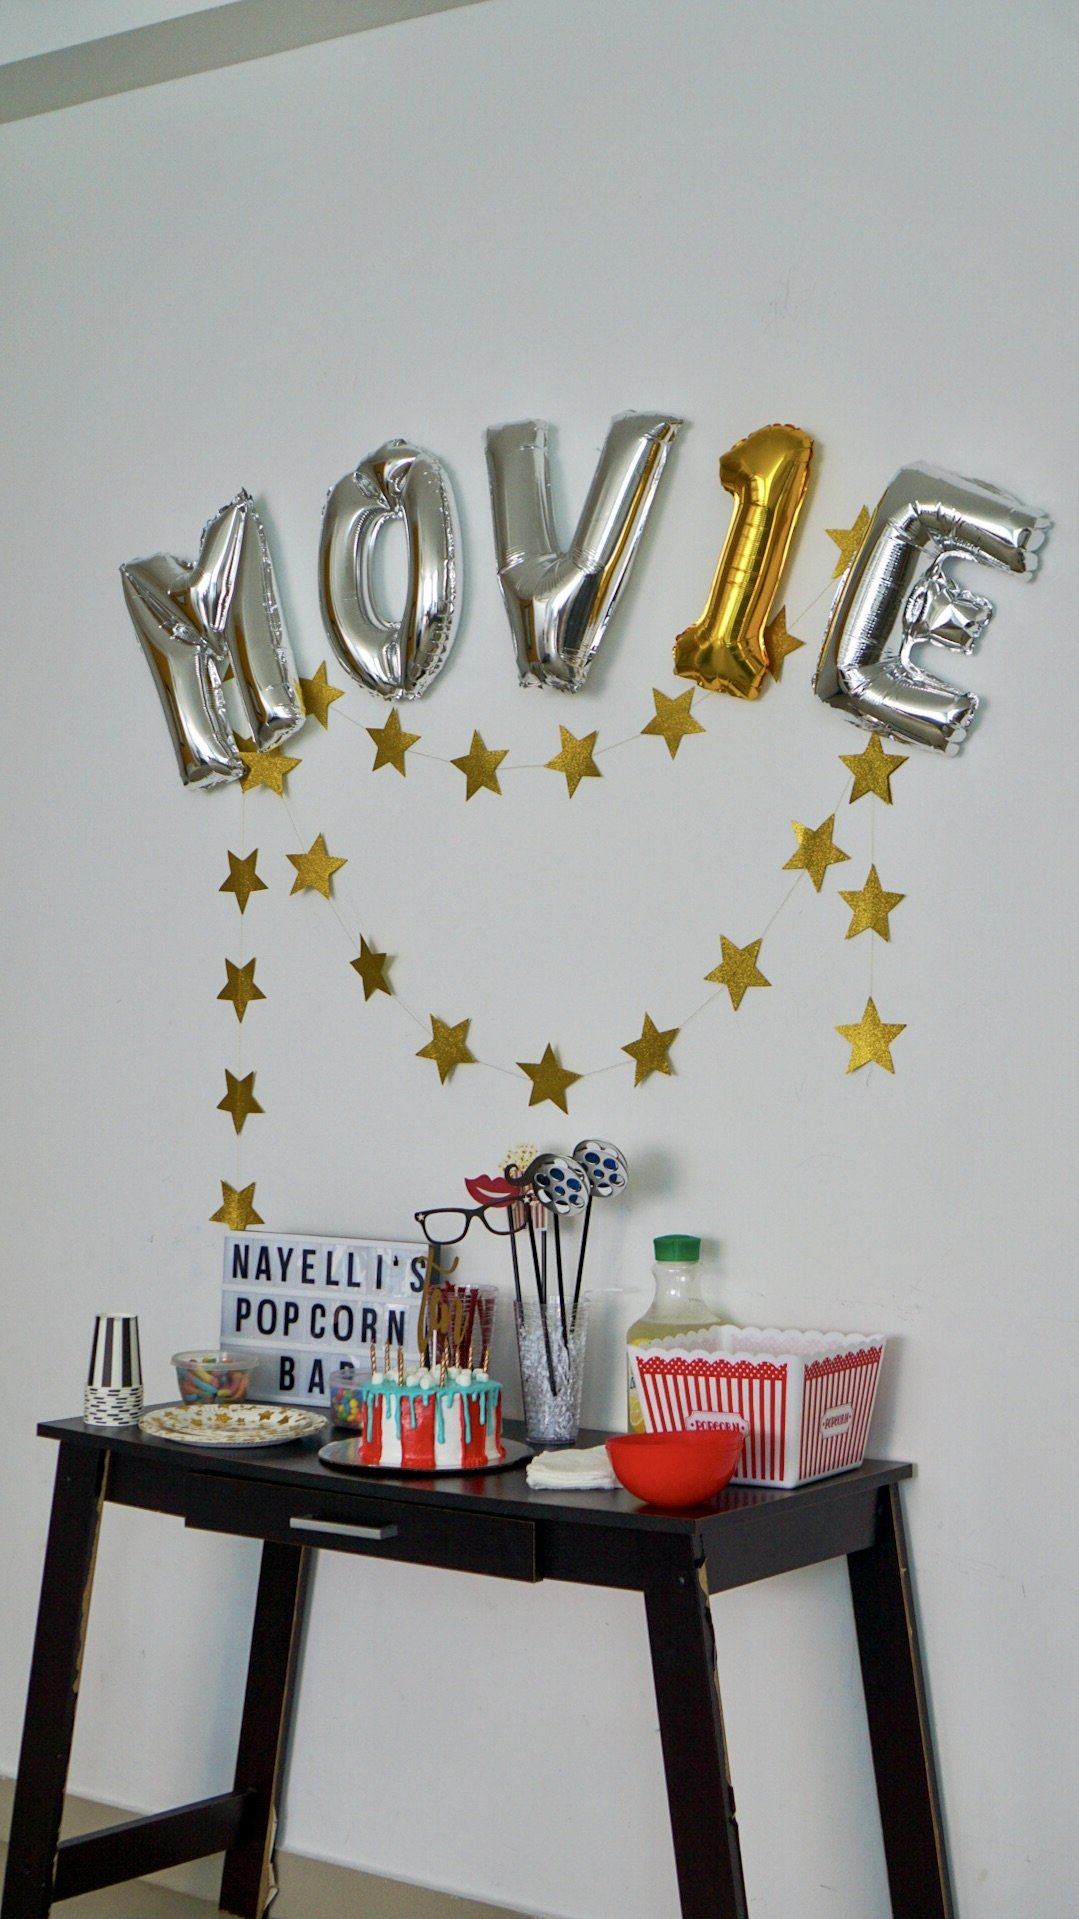 Movie Theme Birthday Party Idea for Kids, popcorn, movie, Netflix party, Movie Party, Party Time, Movies, Family Movie Night